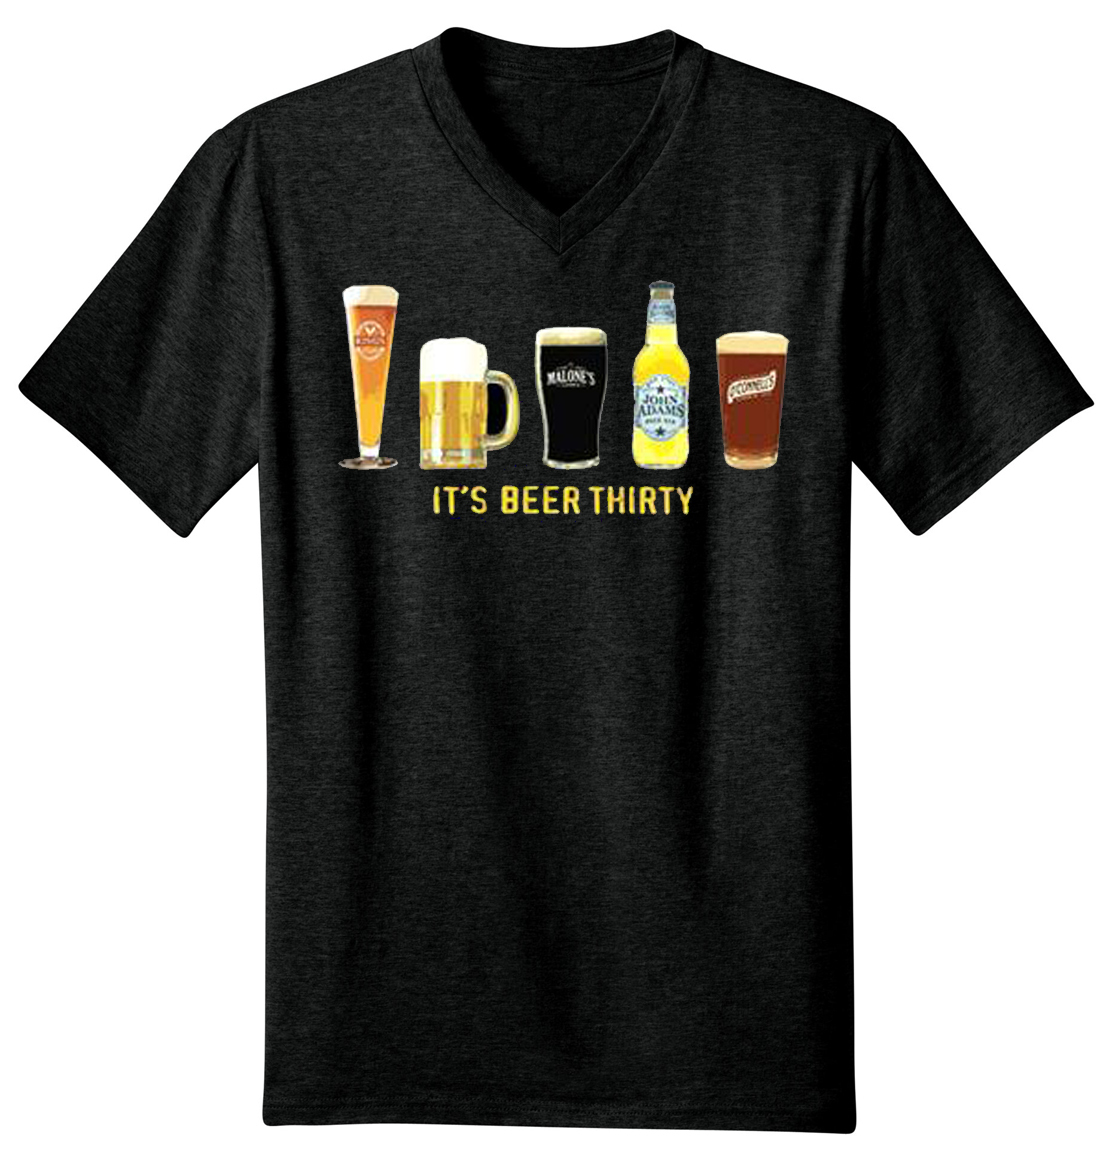 It's Beer Thirty Men's V-Neck T-Shirt